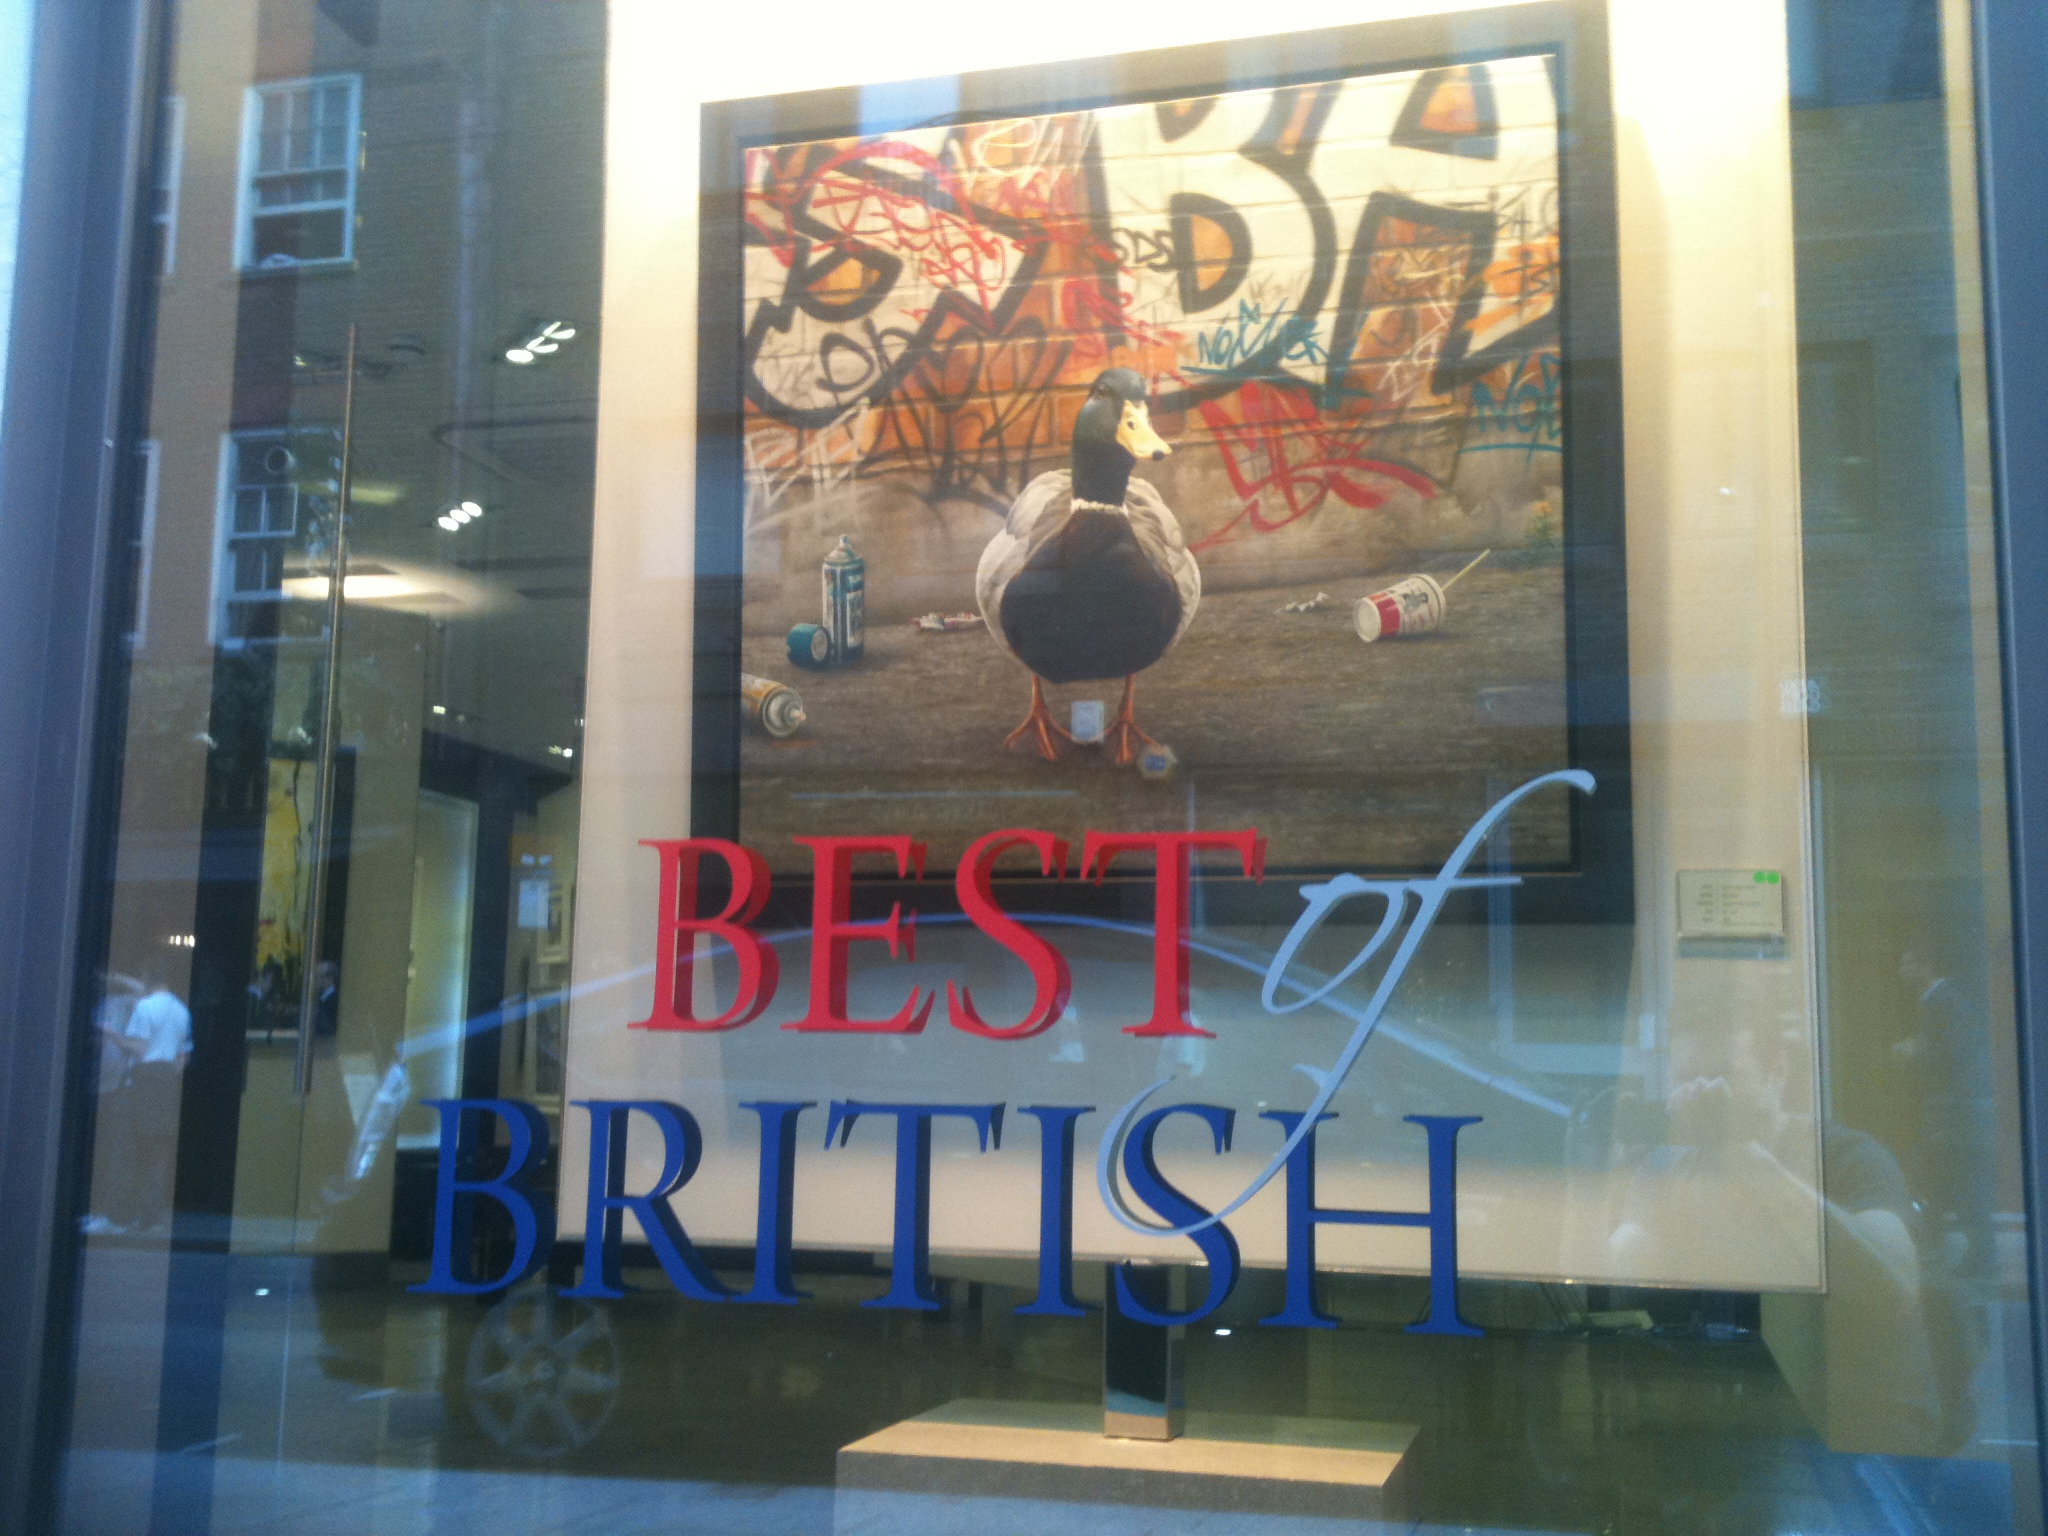 soho square signs E Signs® www.e-signs.co.uk sign art perspex art installations vinyl for art gallery windows